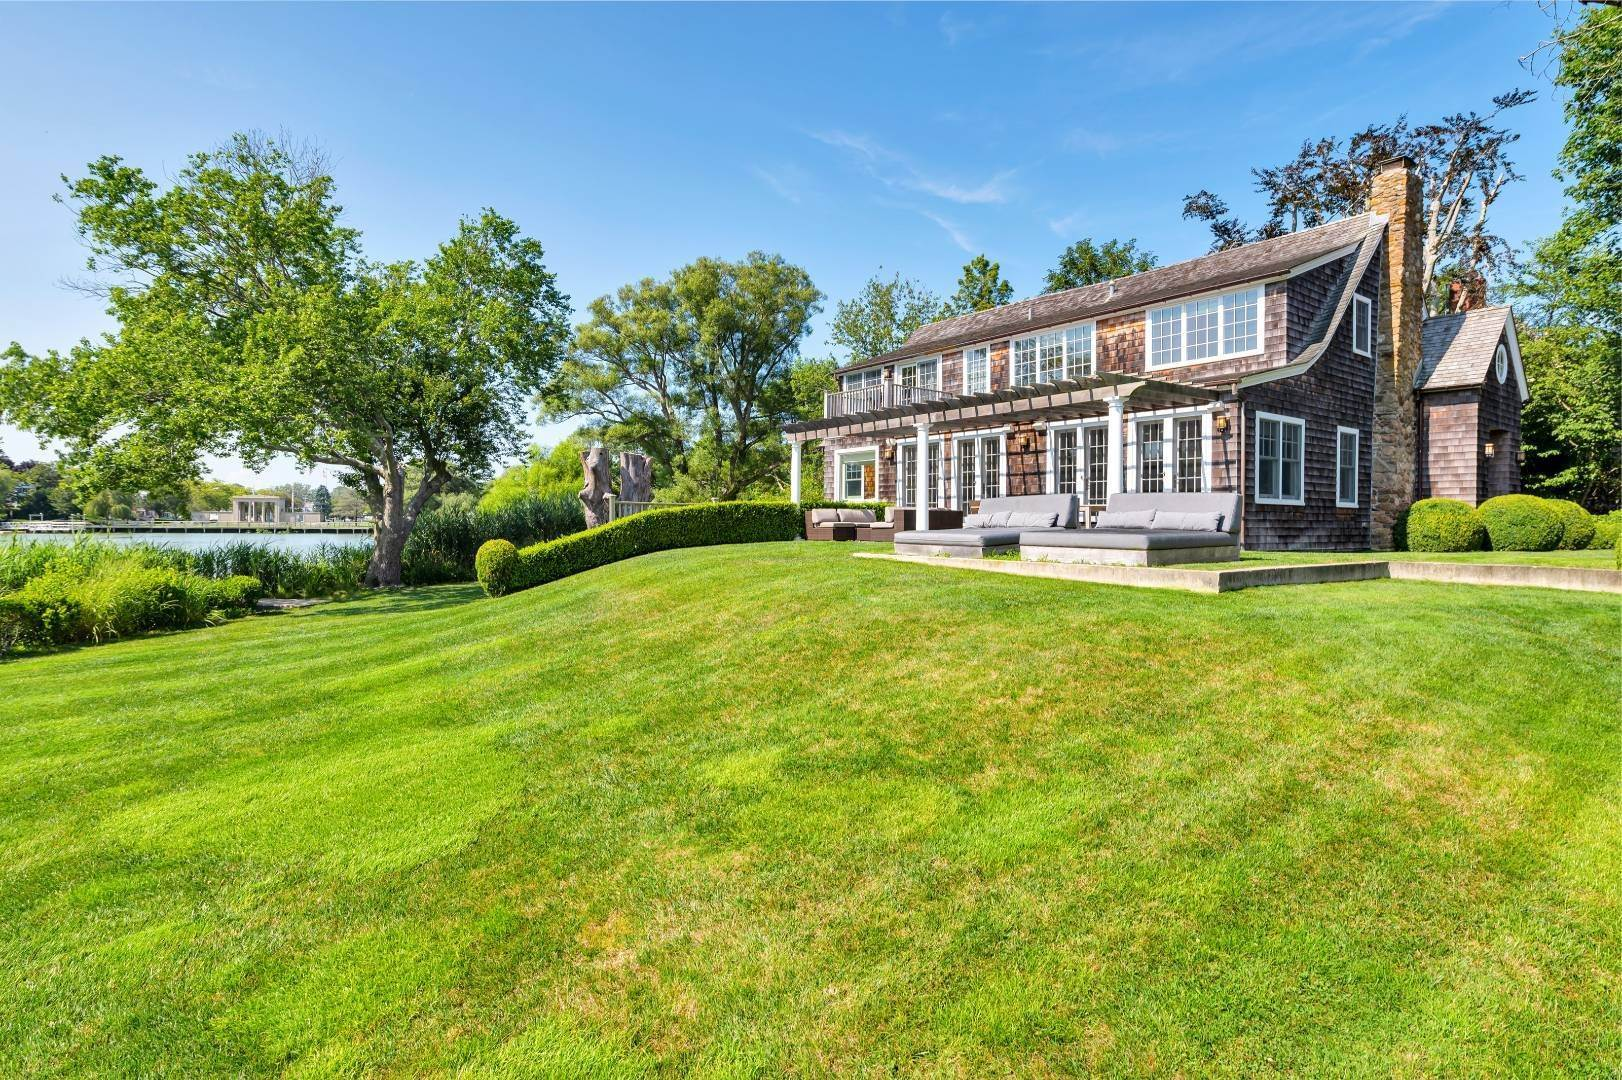 Single Family Home at Immaculate, Stunning Hamptons Pondfront! Southampton, NY 11968